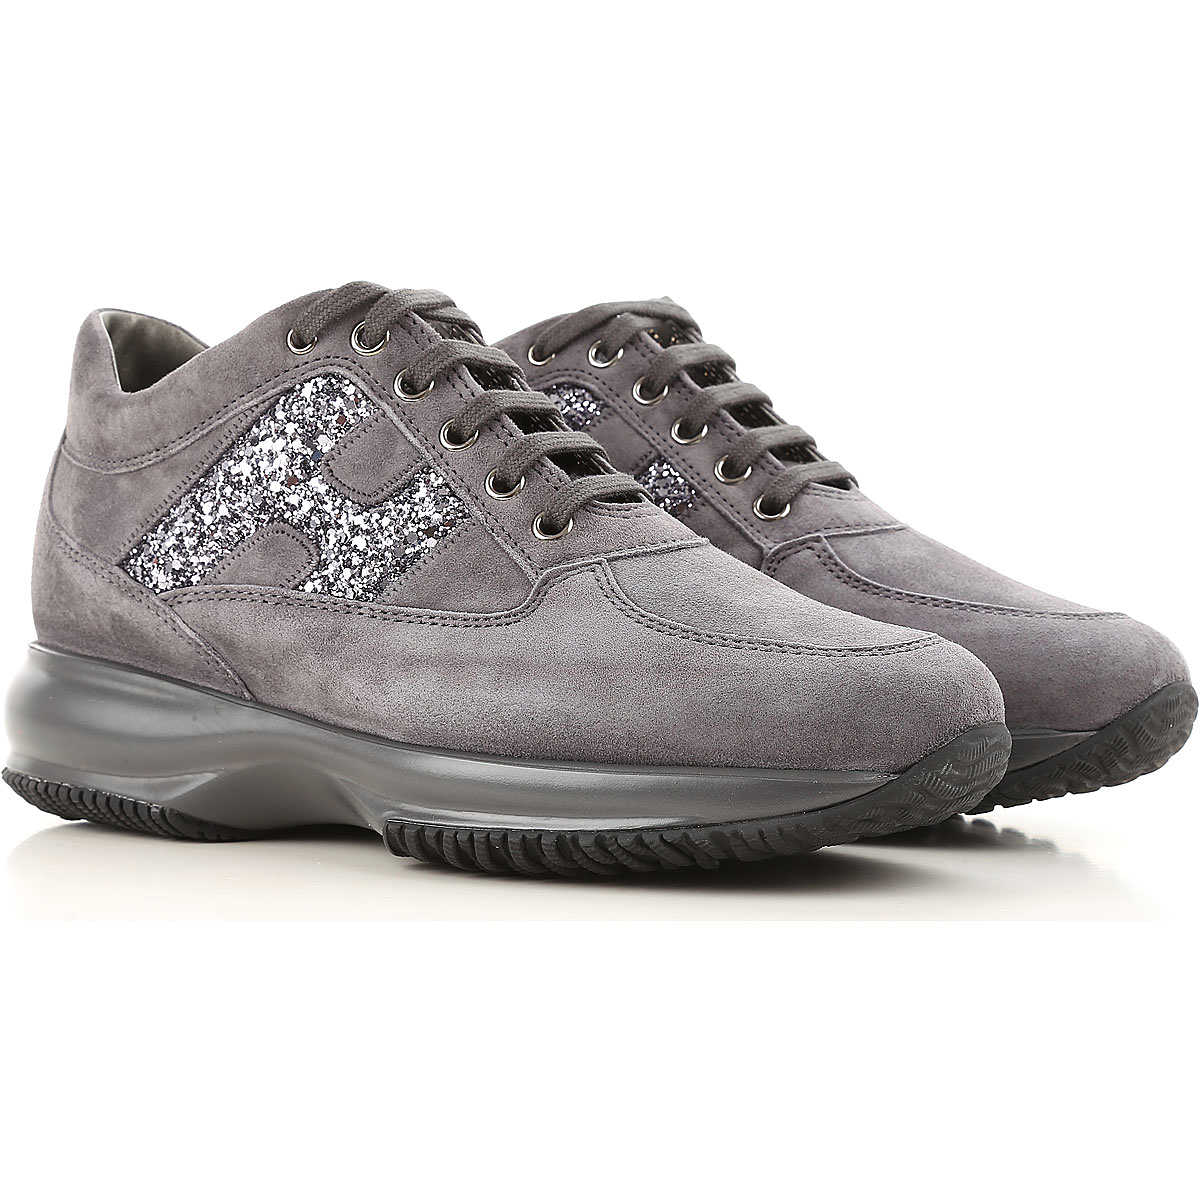 Hogan Sneakers for Women On Sale Anthracite DK - GOOFASH - Womens SNEAKER